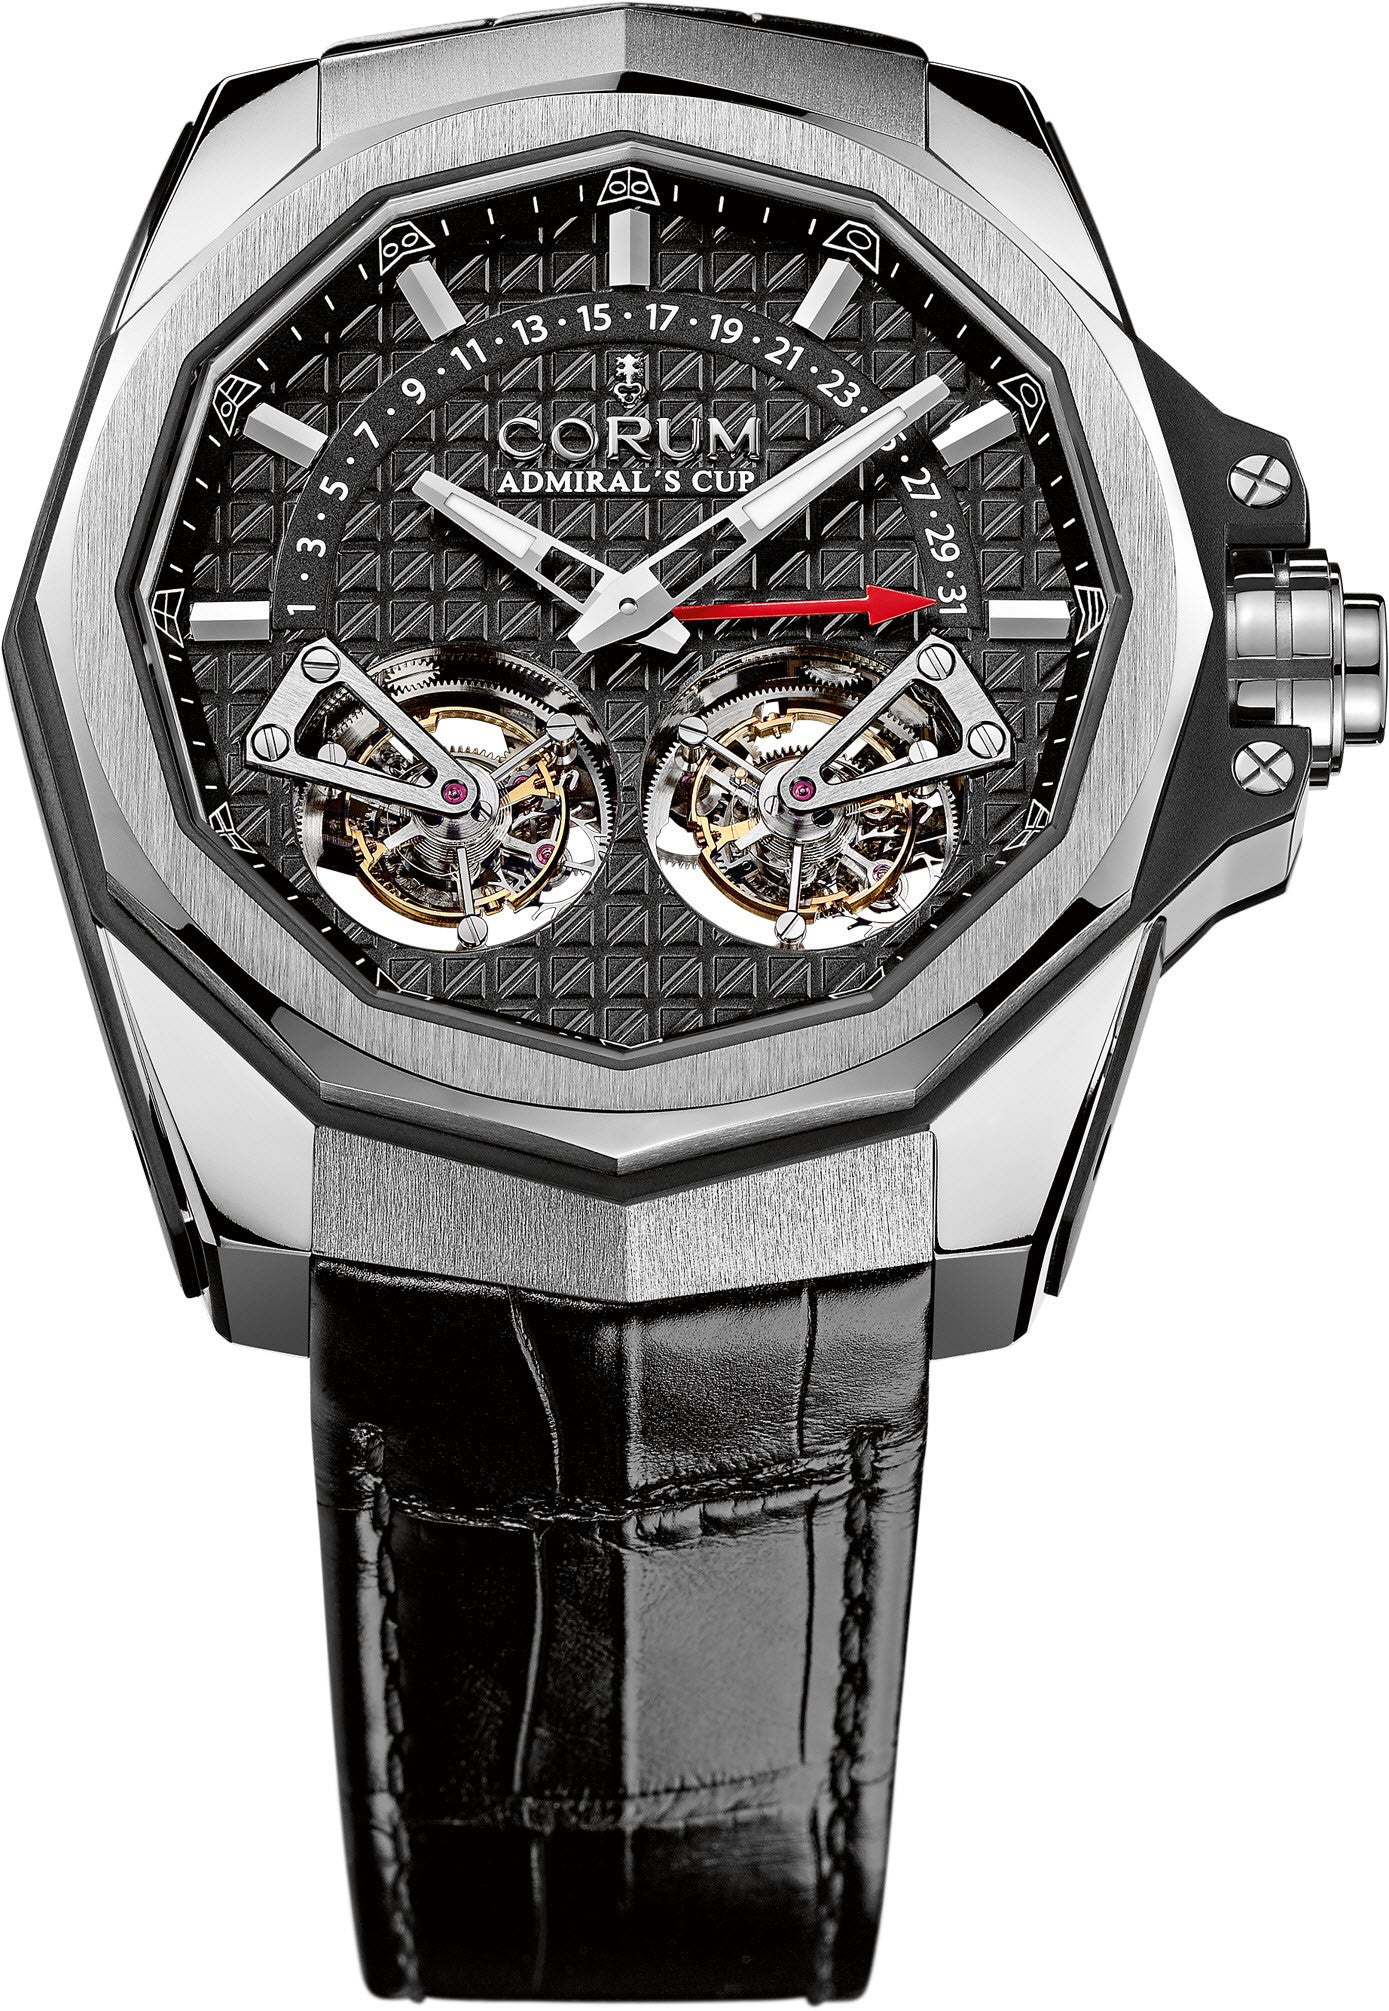 Bargain Corum Watch Admirals Cup AC-One 45 Double Tourbillon Stockists